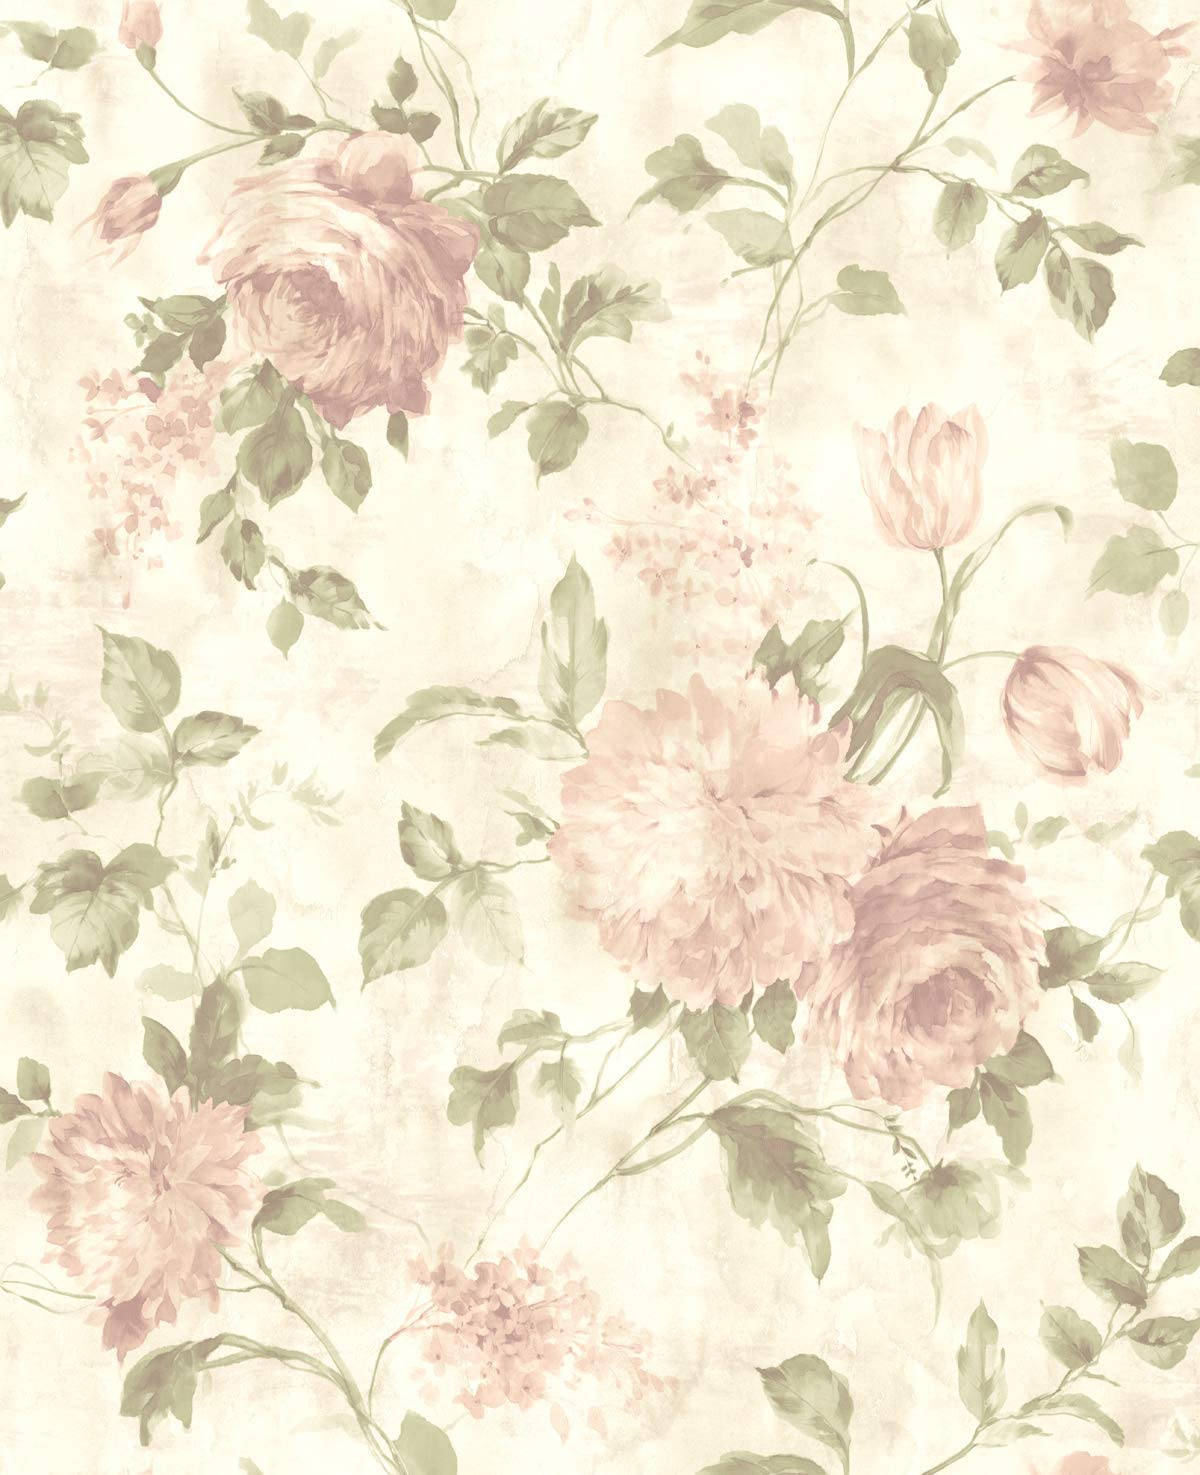 Wallpaper Floral Chinoiserie Wallpaper Vintage Floral Wallpaper